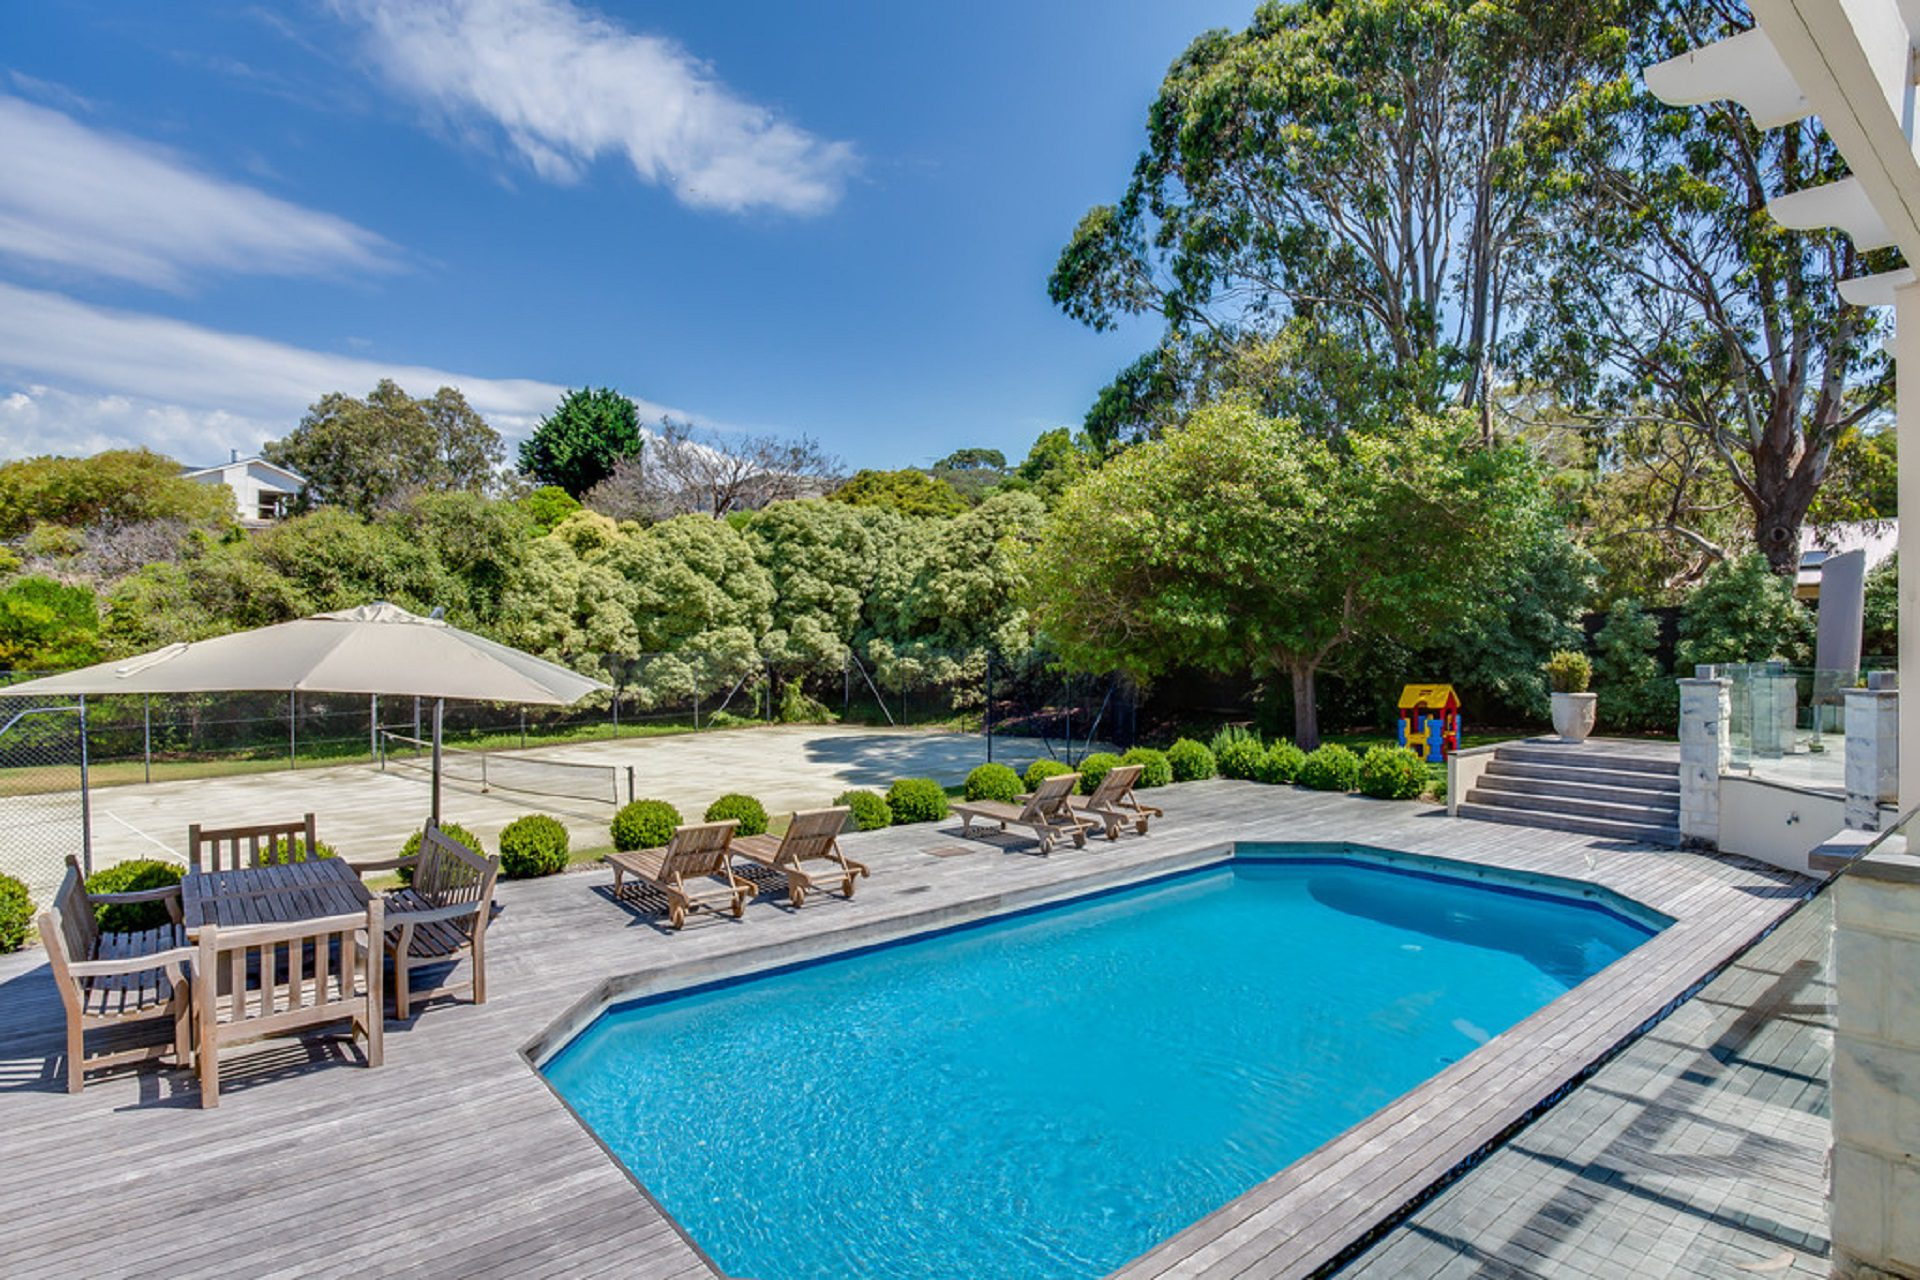 Hemston Lakehouse - Views, pool & tennis court